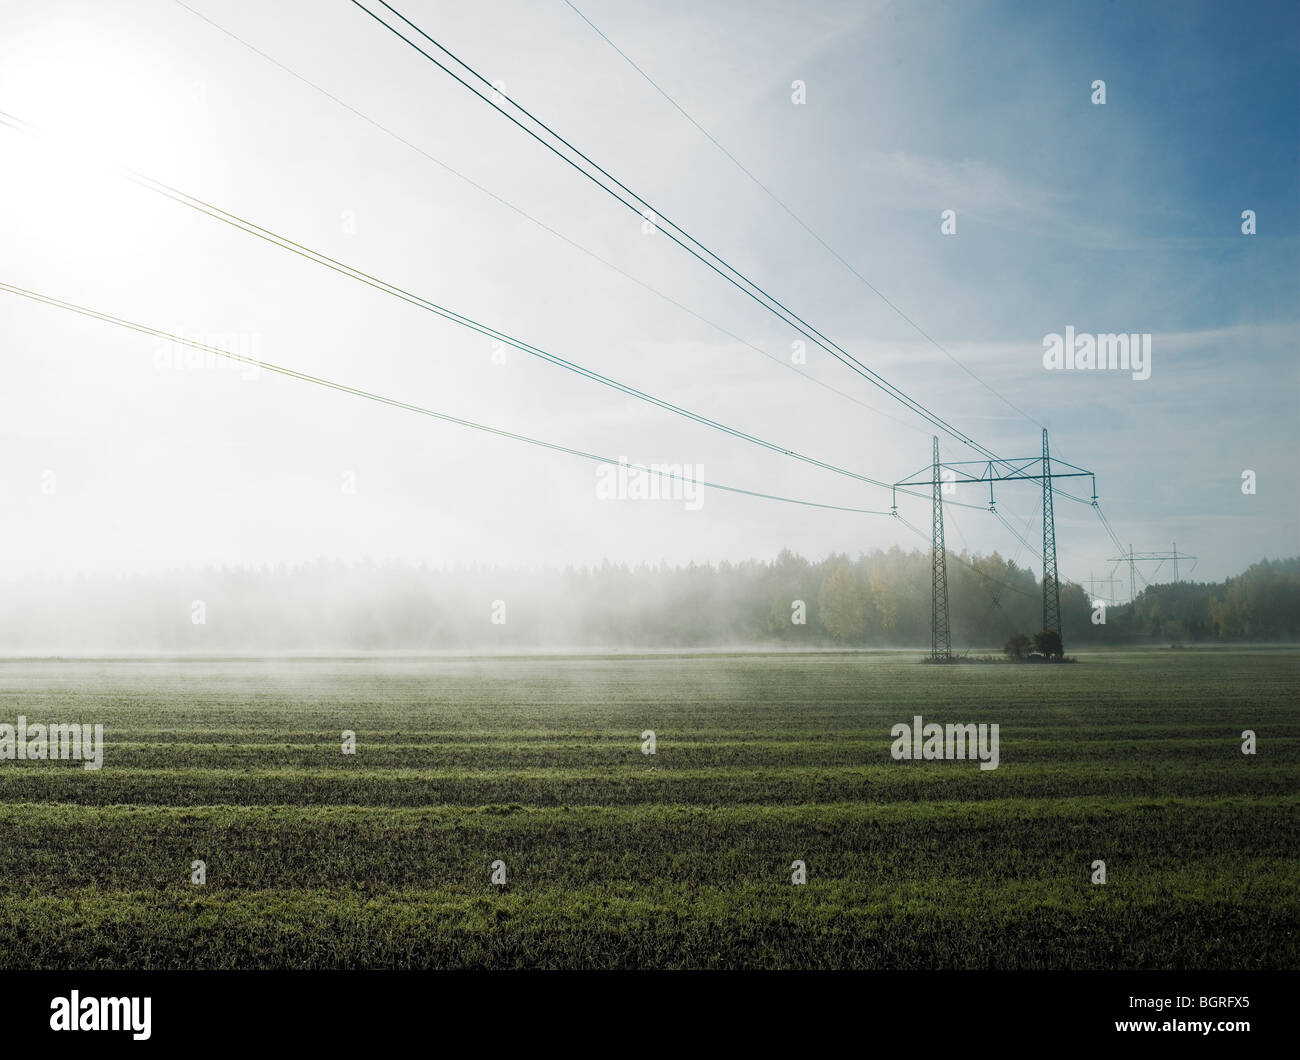 Electric lines above a foggy field, Sweden. - Stock Image